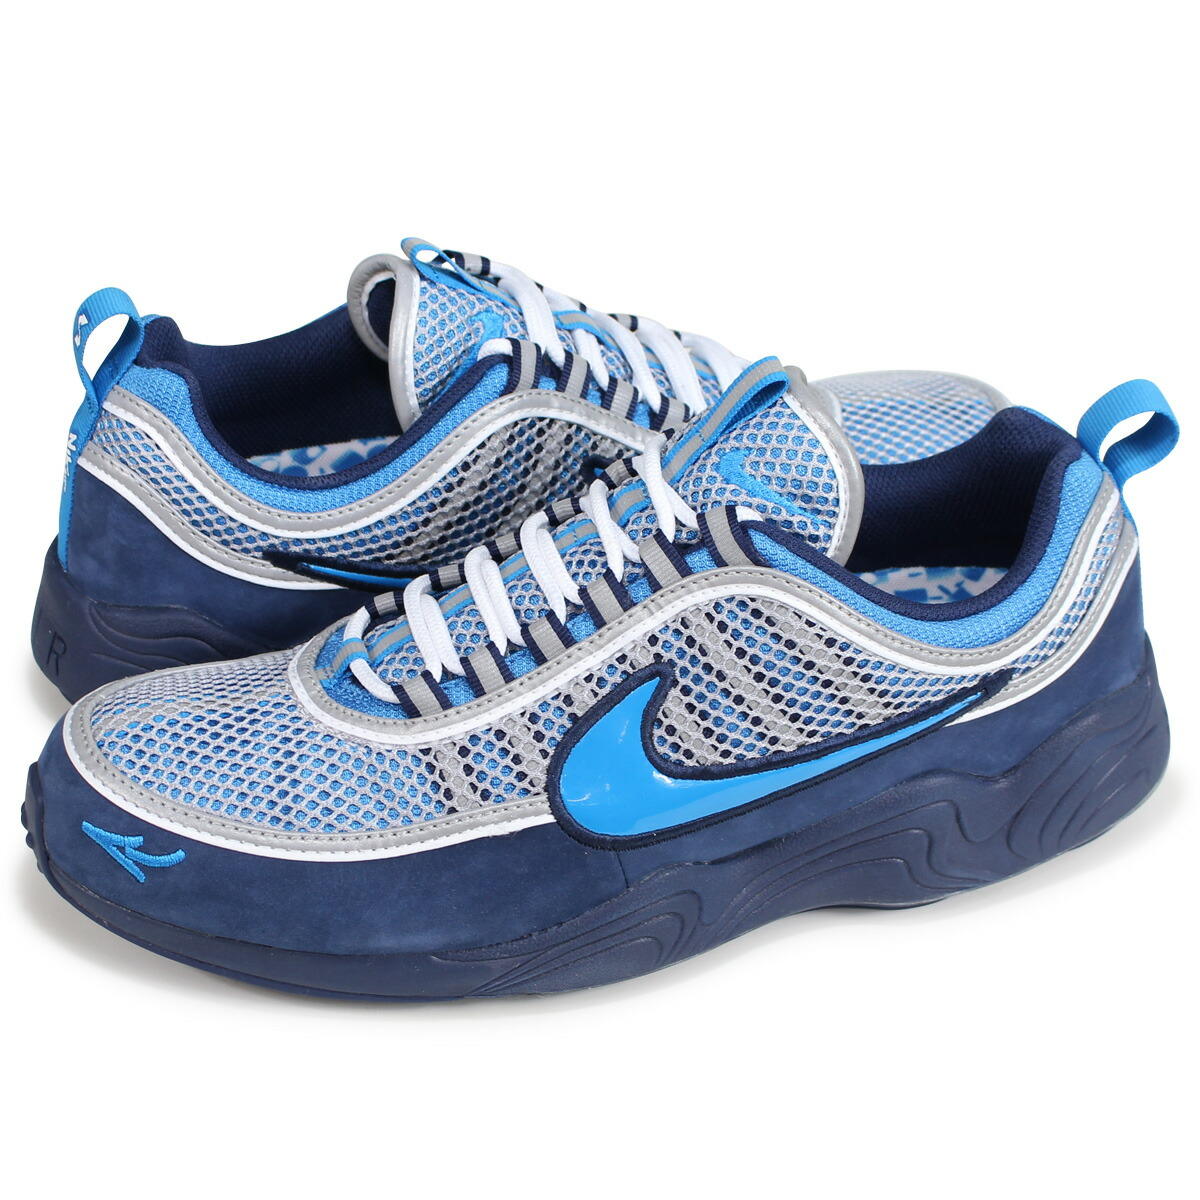 NIKE AIR ZOOM SPIRIDON 16 STASH Nike air zoom pyridone sneakers men AH7973 400 navy